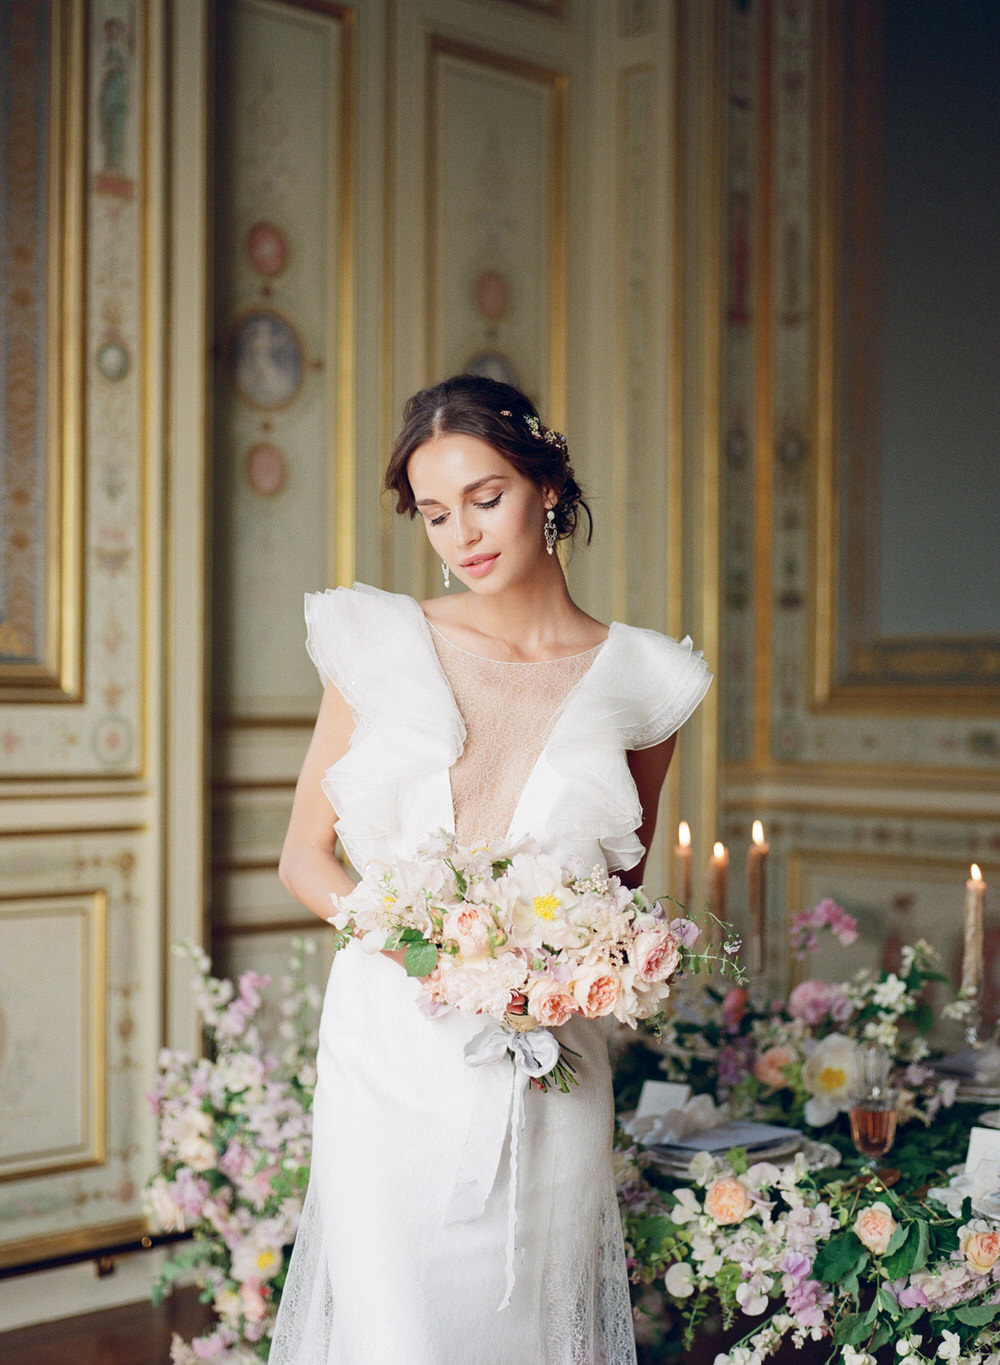 Classy and Elegant Wedding Inspiration Bride Portrait in Paris at Greg Finck Workshop with Rime Arodaky Wedding Dress